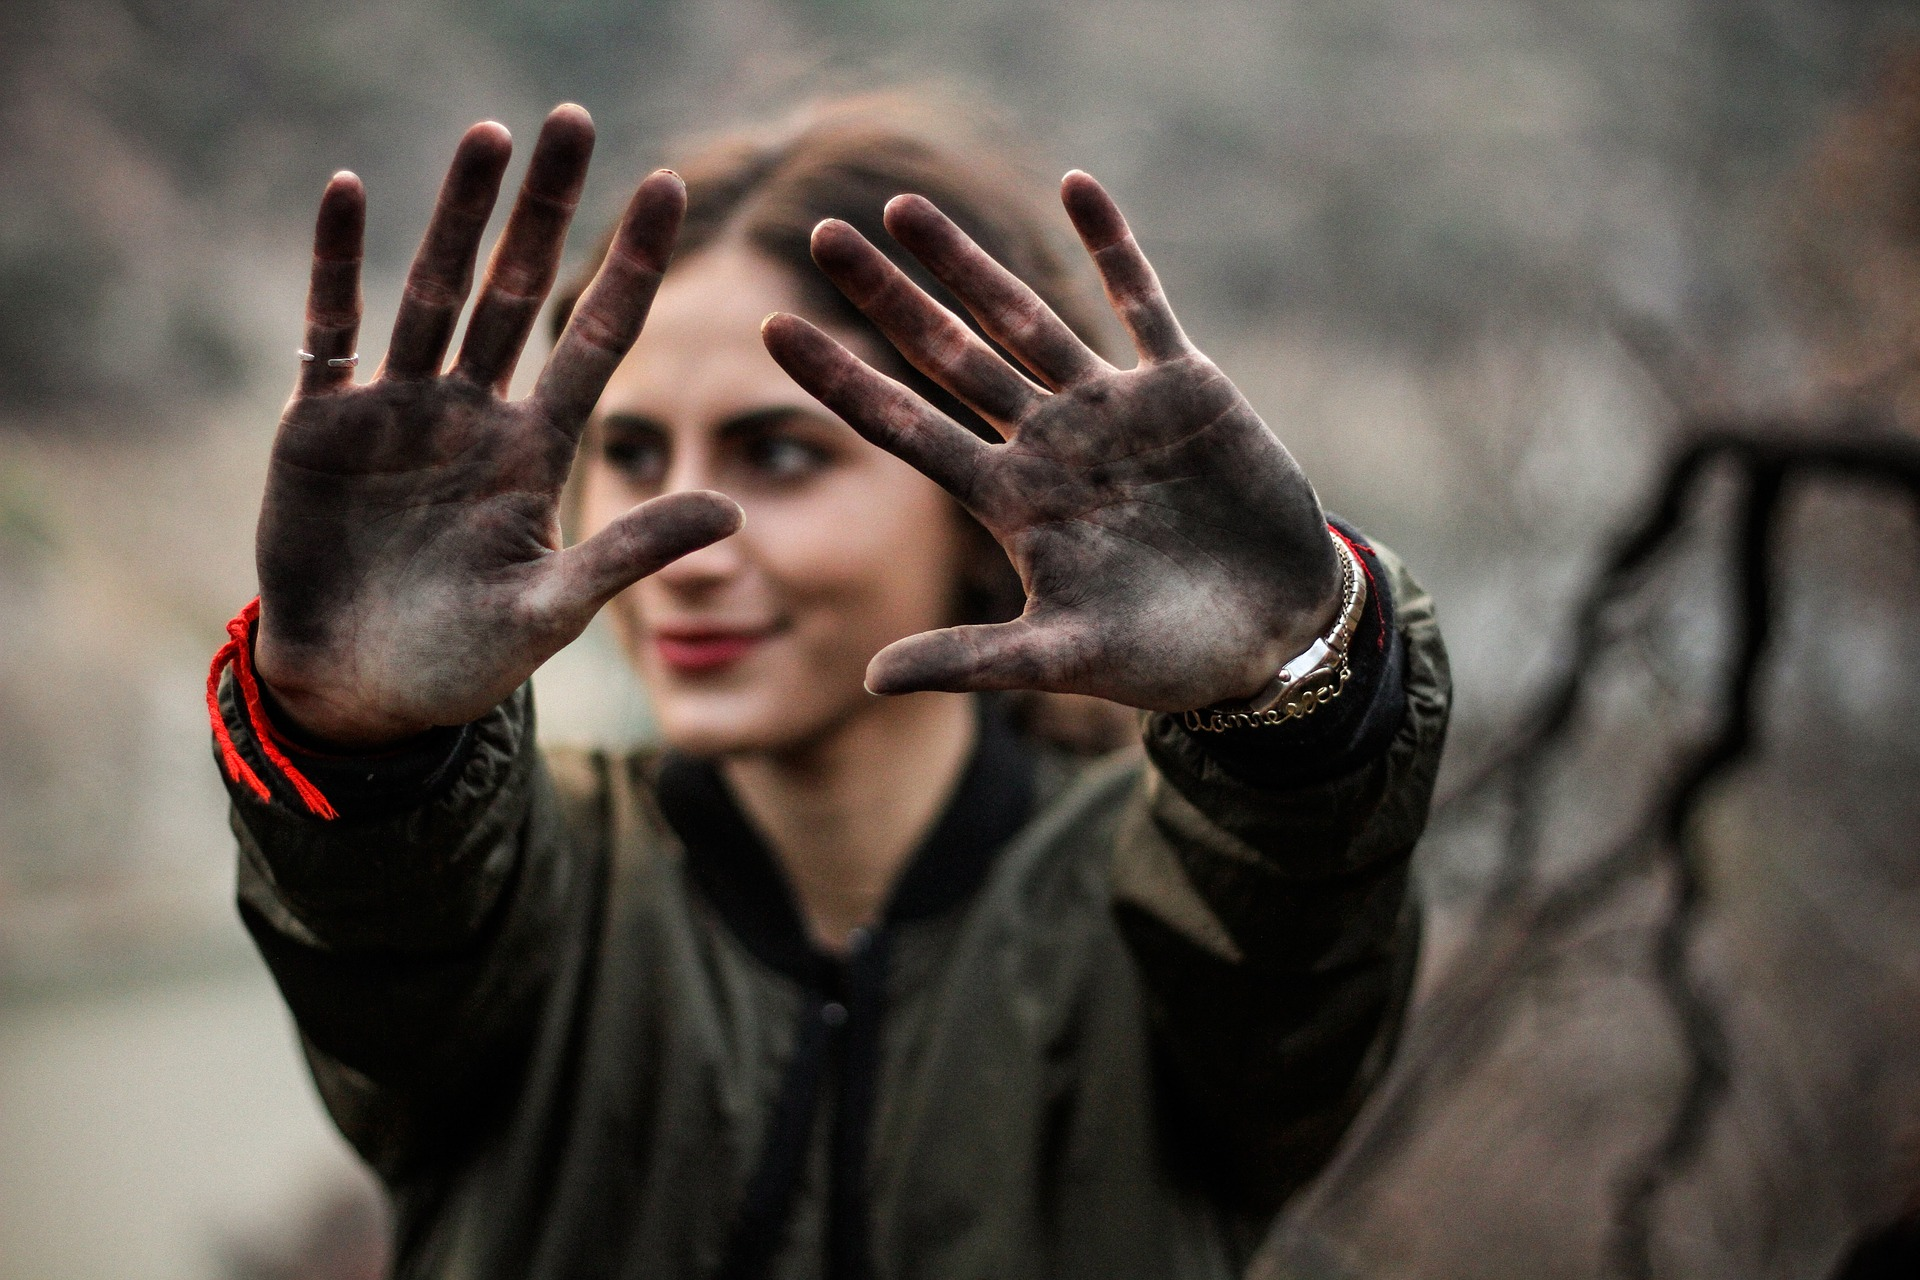 Woman with dirty hands